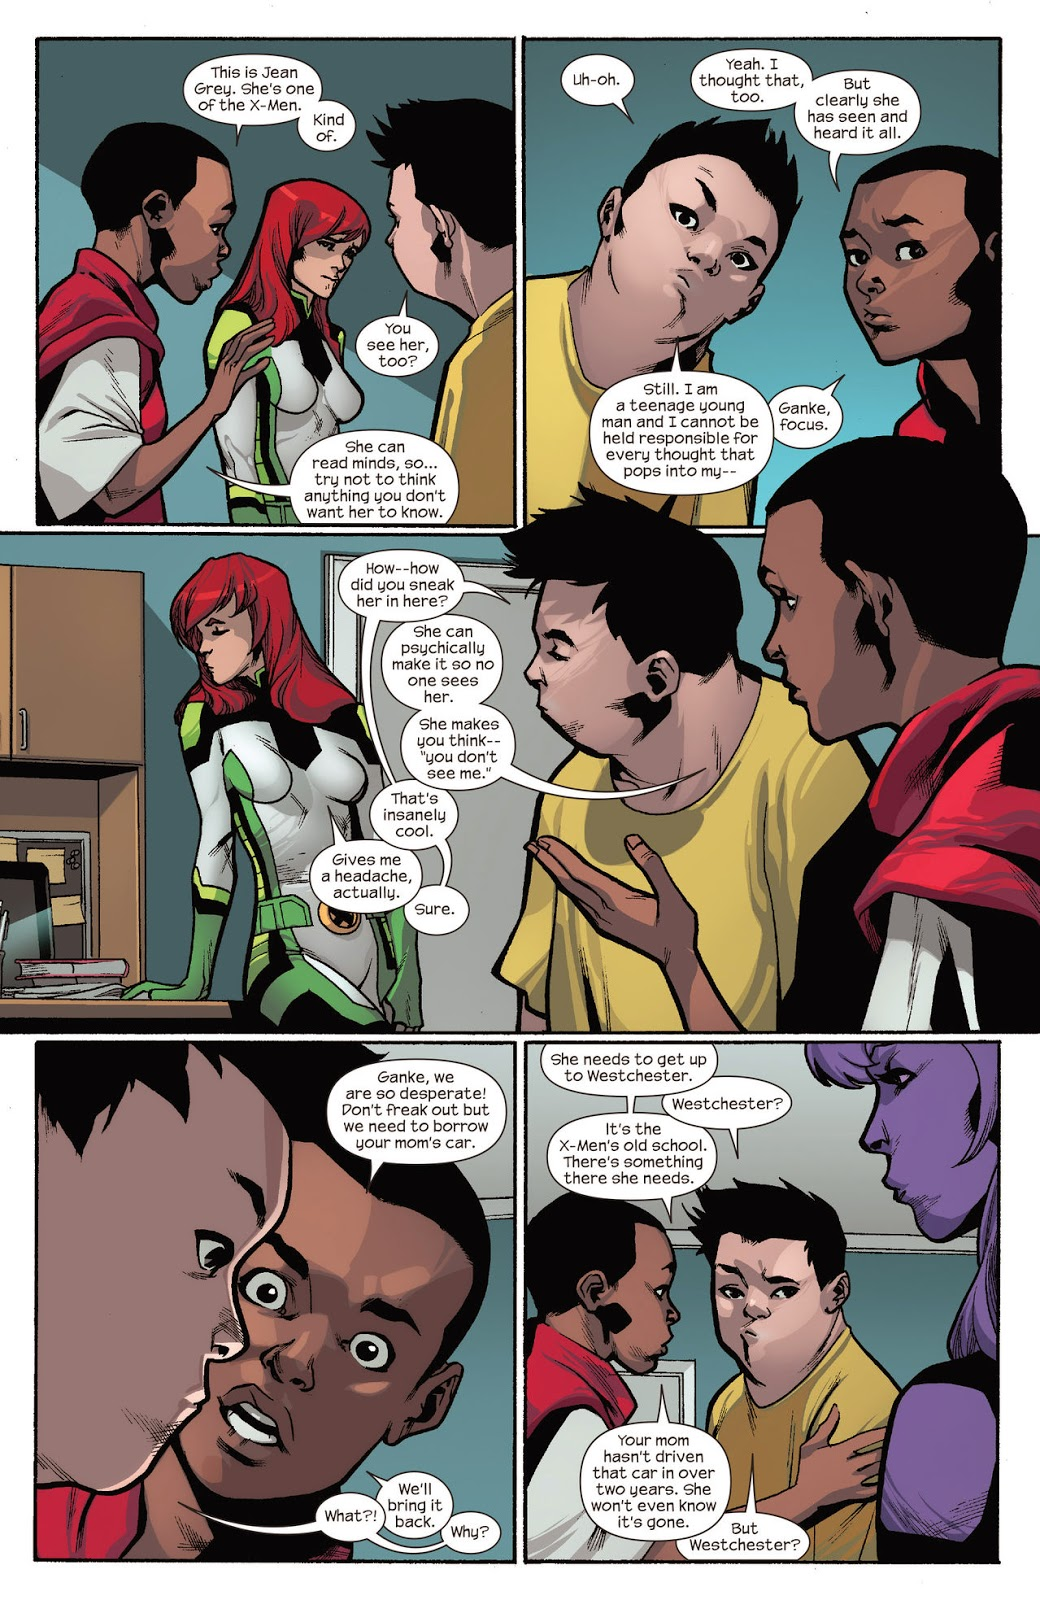 Jean Grey and Miles Morales seek help